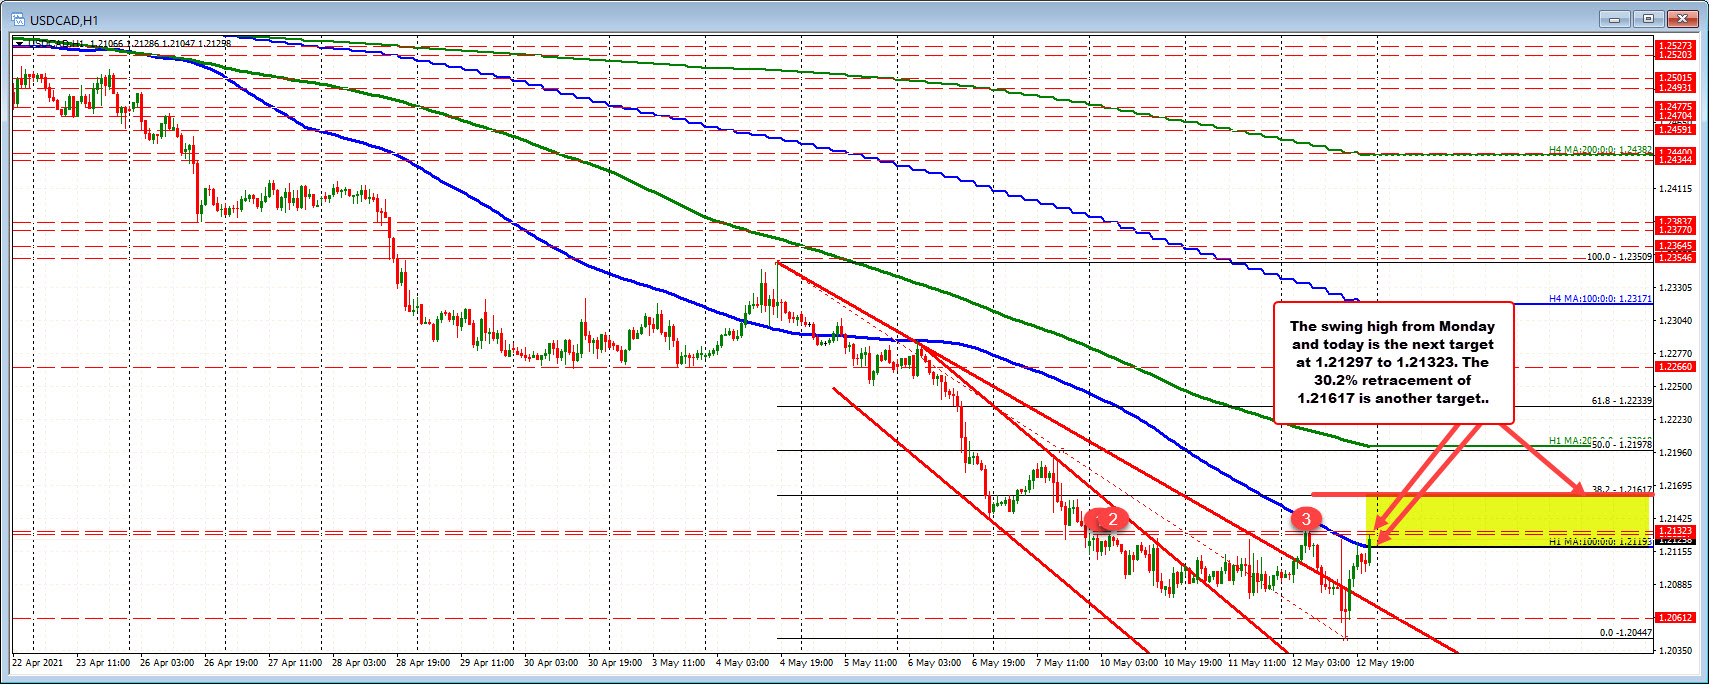 USDCAD moves above its 100 hour moving average